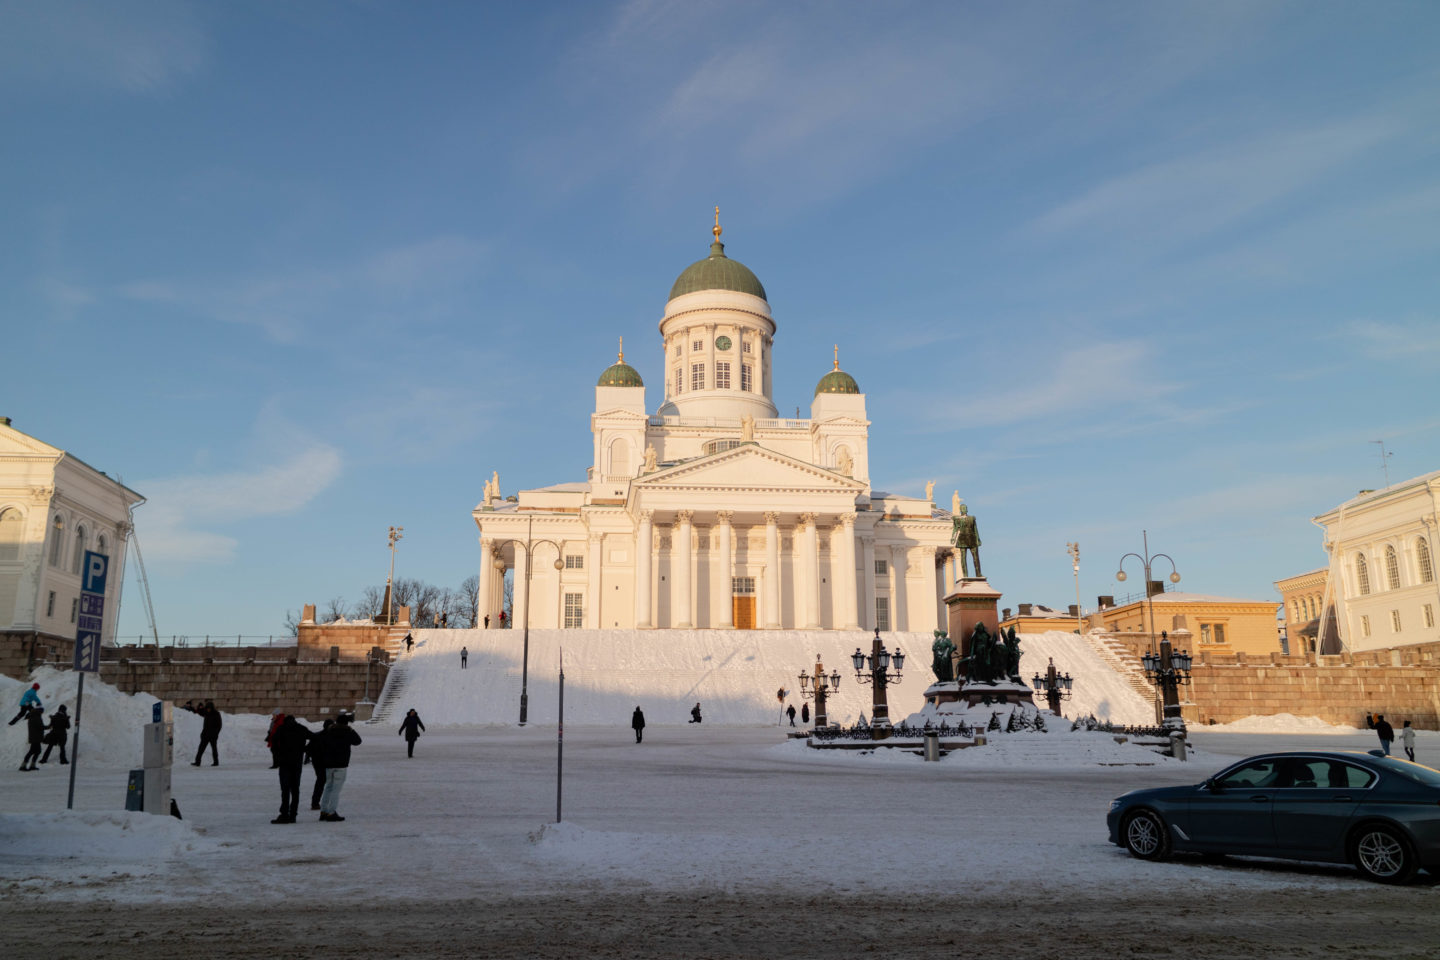 Helsinki in a day - Helsinki Cathedral and Senate Square